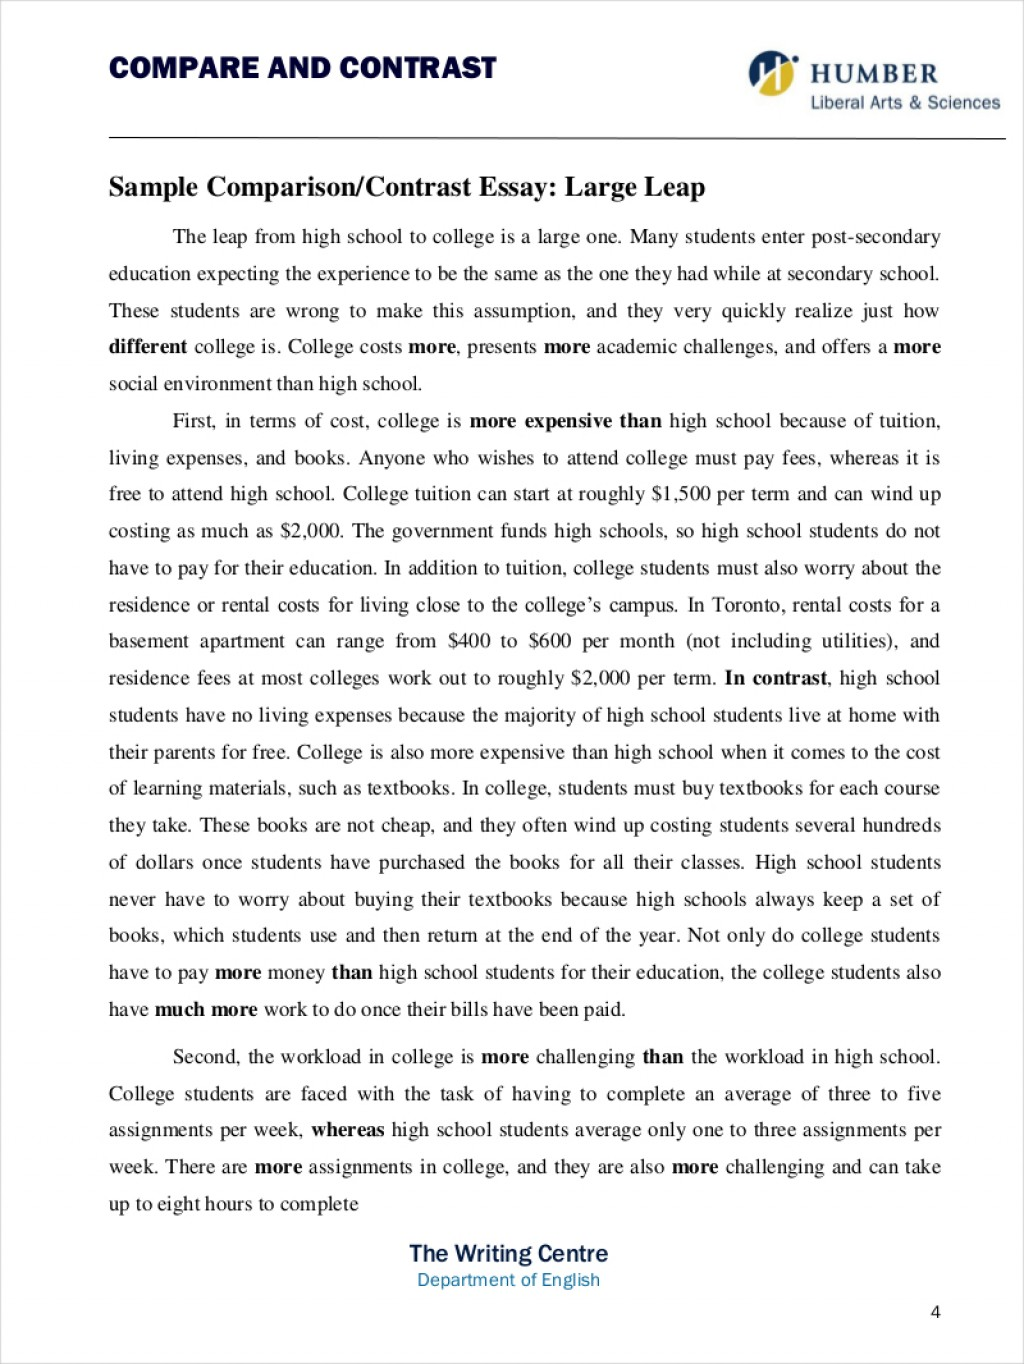 009 Comparison And Contrast Essay Comparative Samples Free Pdf Format Download Throughout Compare Examples Thesis Coles Thecolossus Co Within Ex 5th Grade 4th 6th 3rd High Awful Topics List Statement Means Large